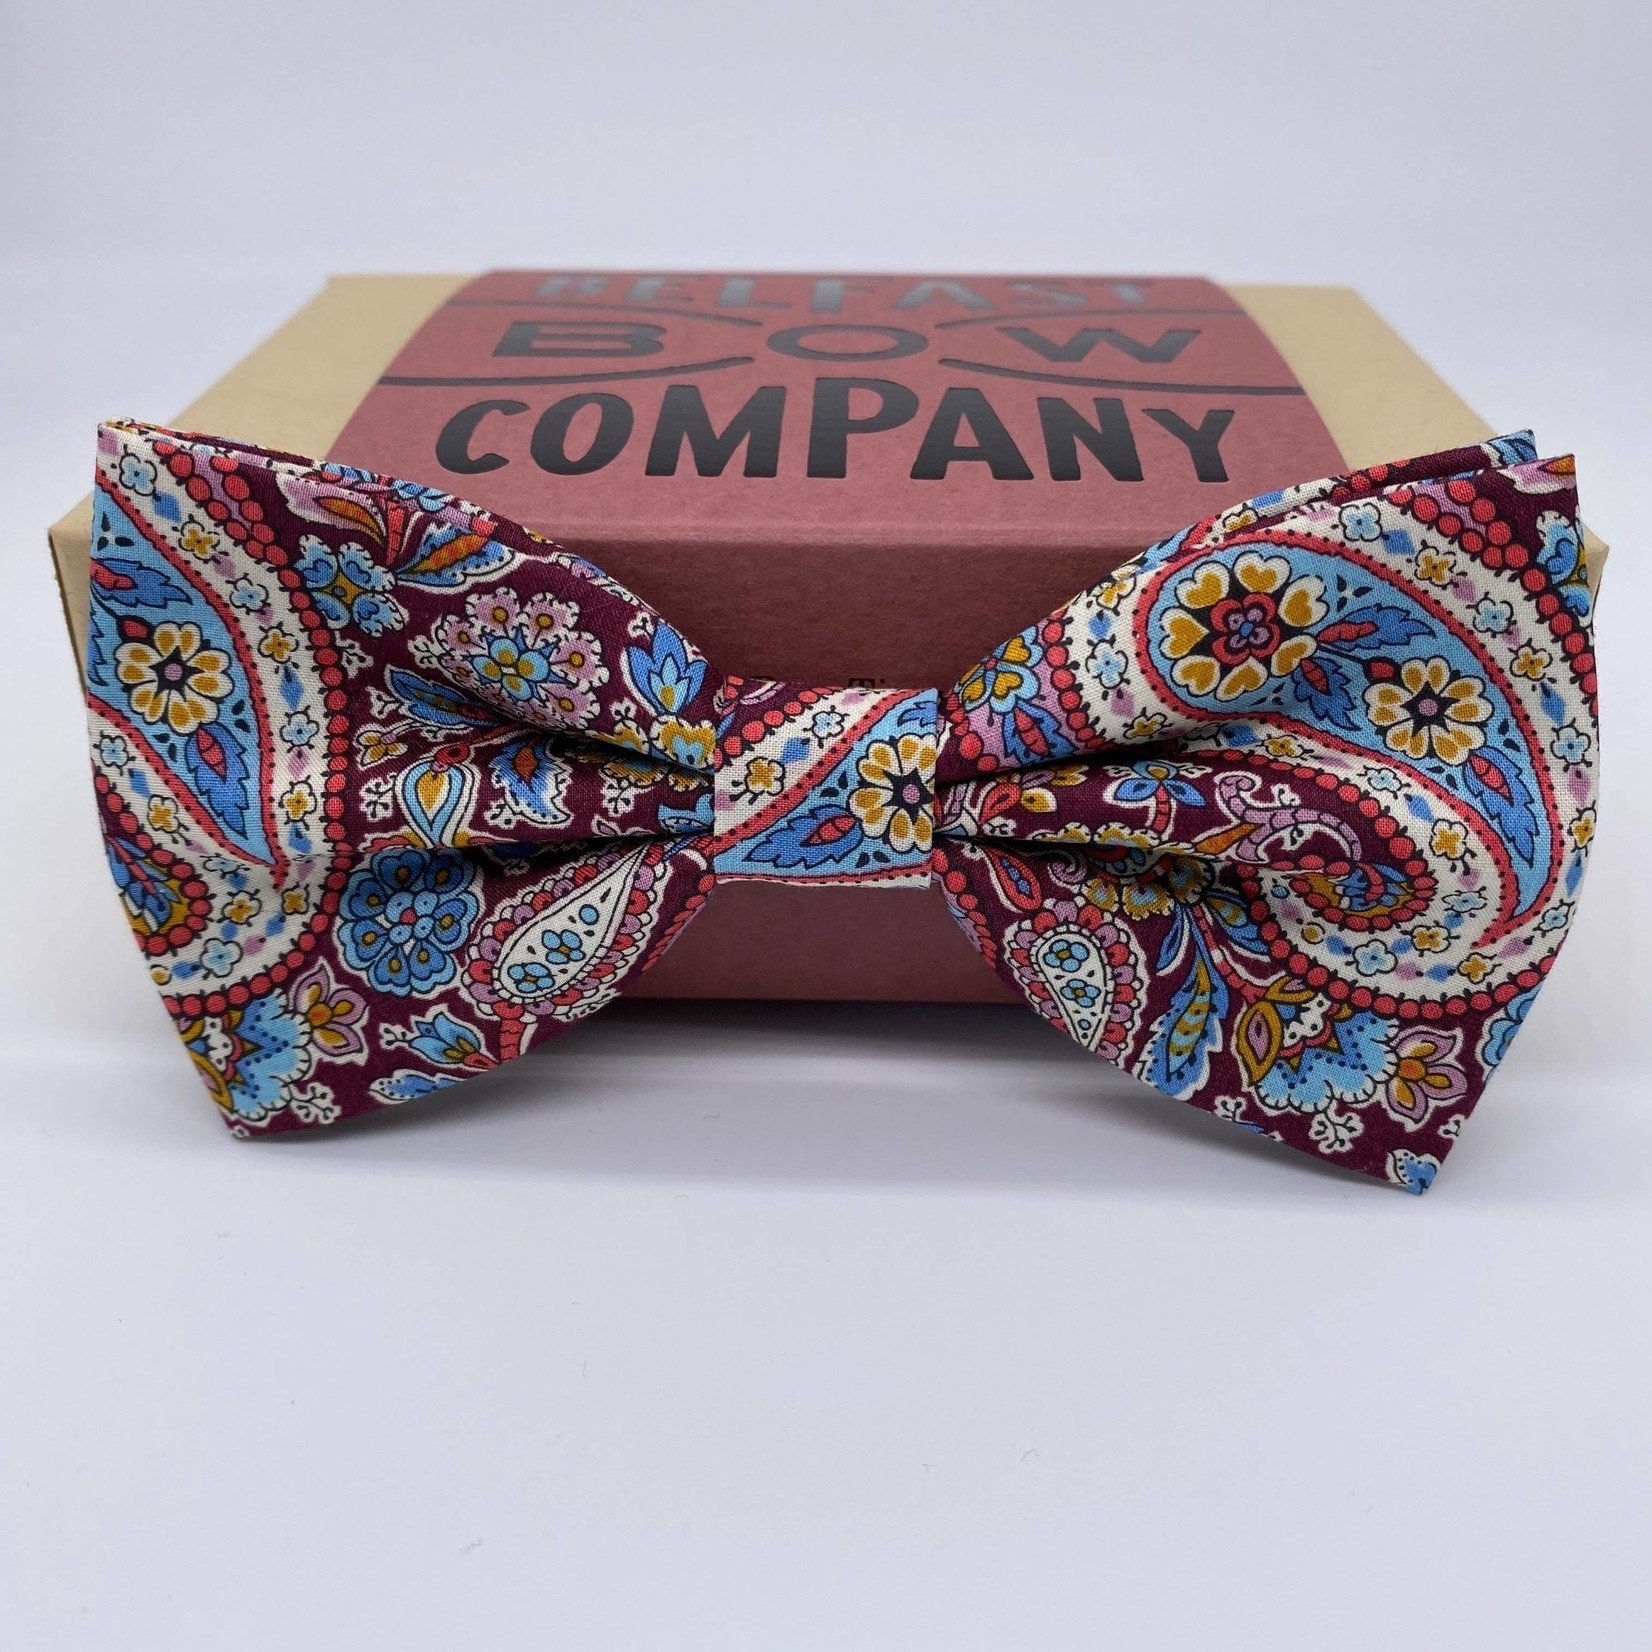 Belfast Bow Company Bow Tie in Liberty of London Burgundy Paisley